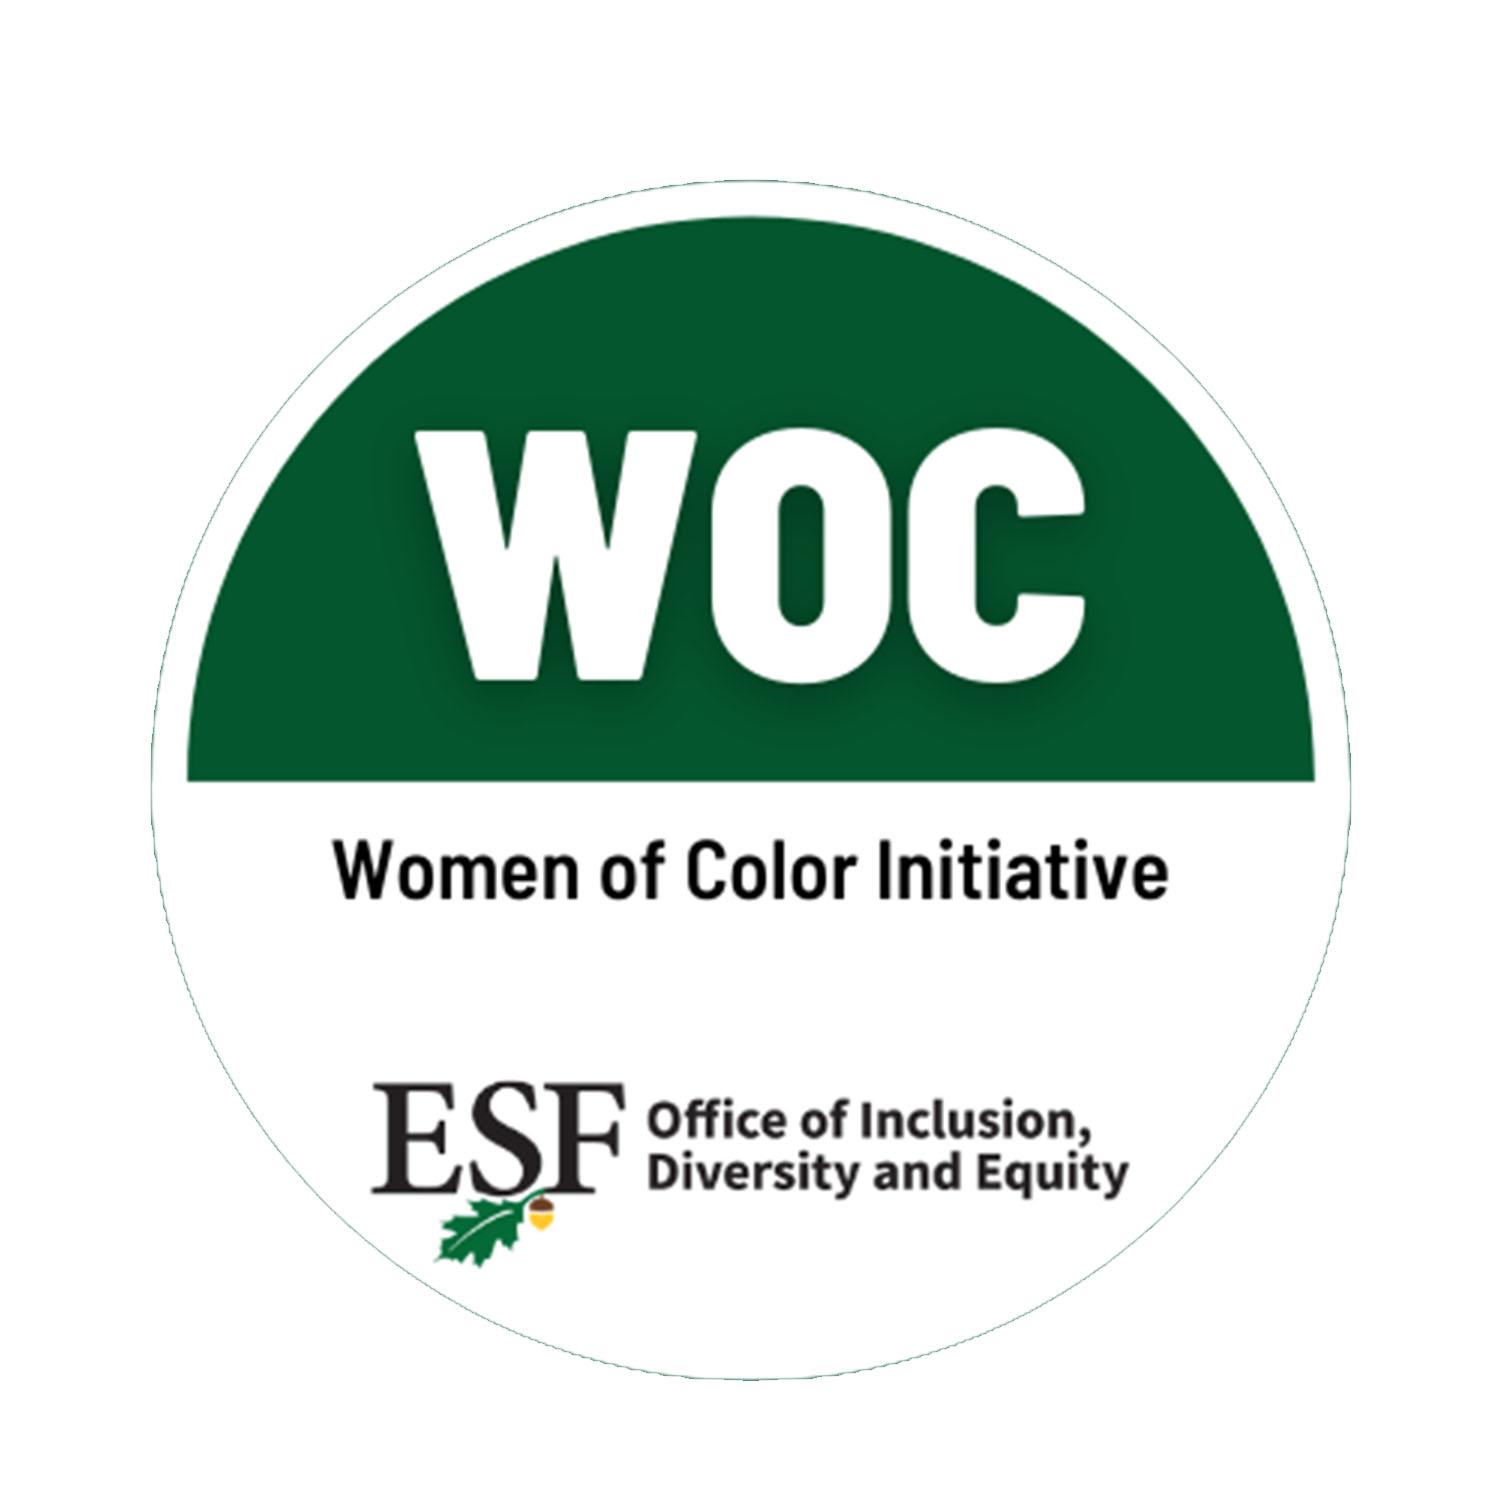 Women of Color Initiative